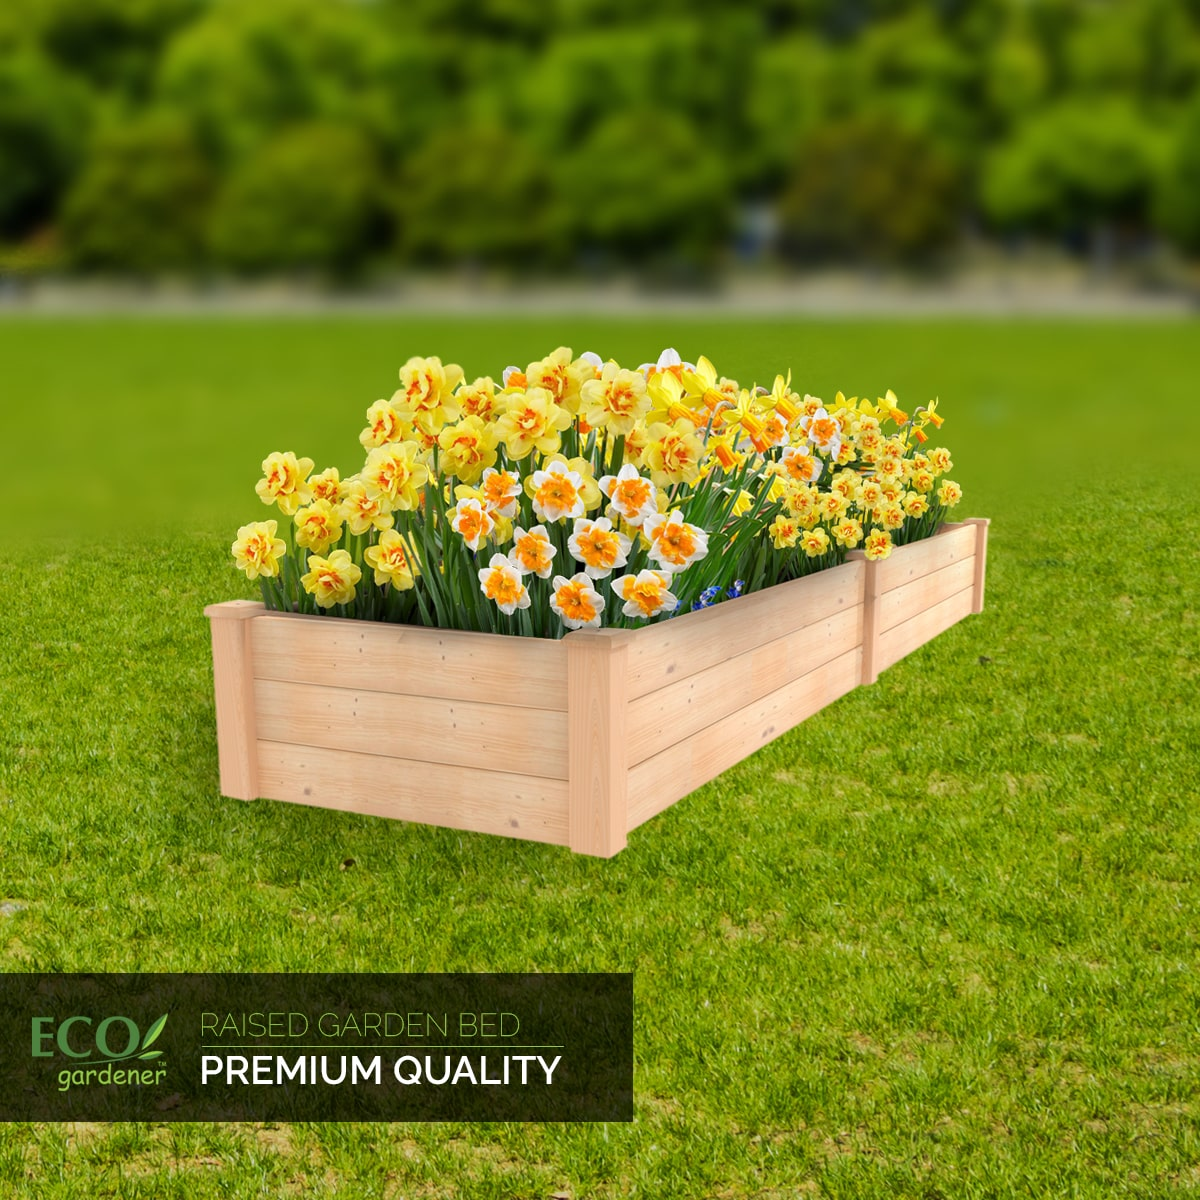 Ecogardener Raised Bed Planter